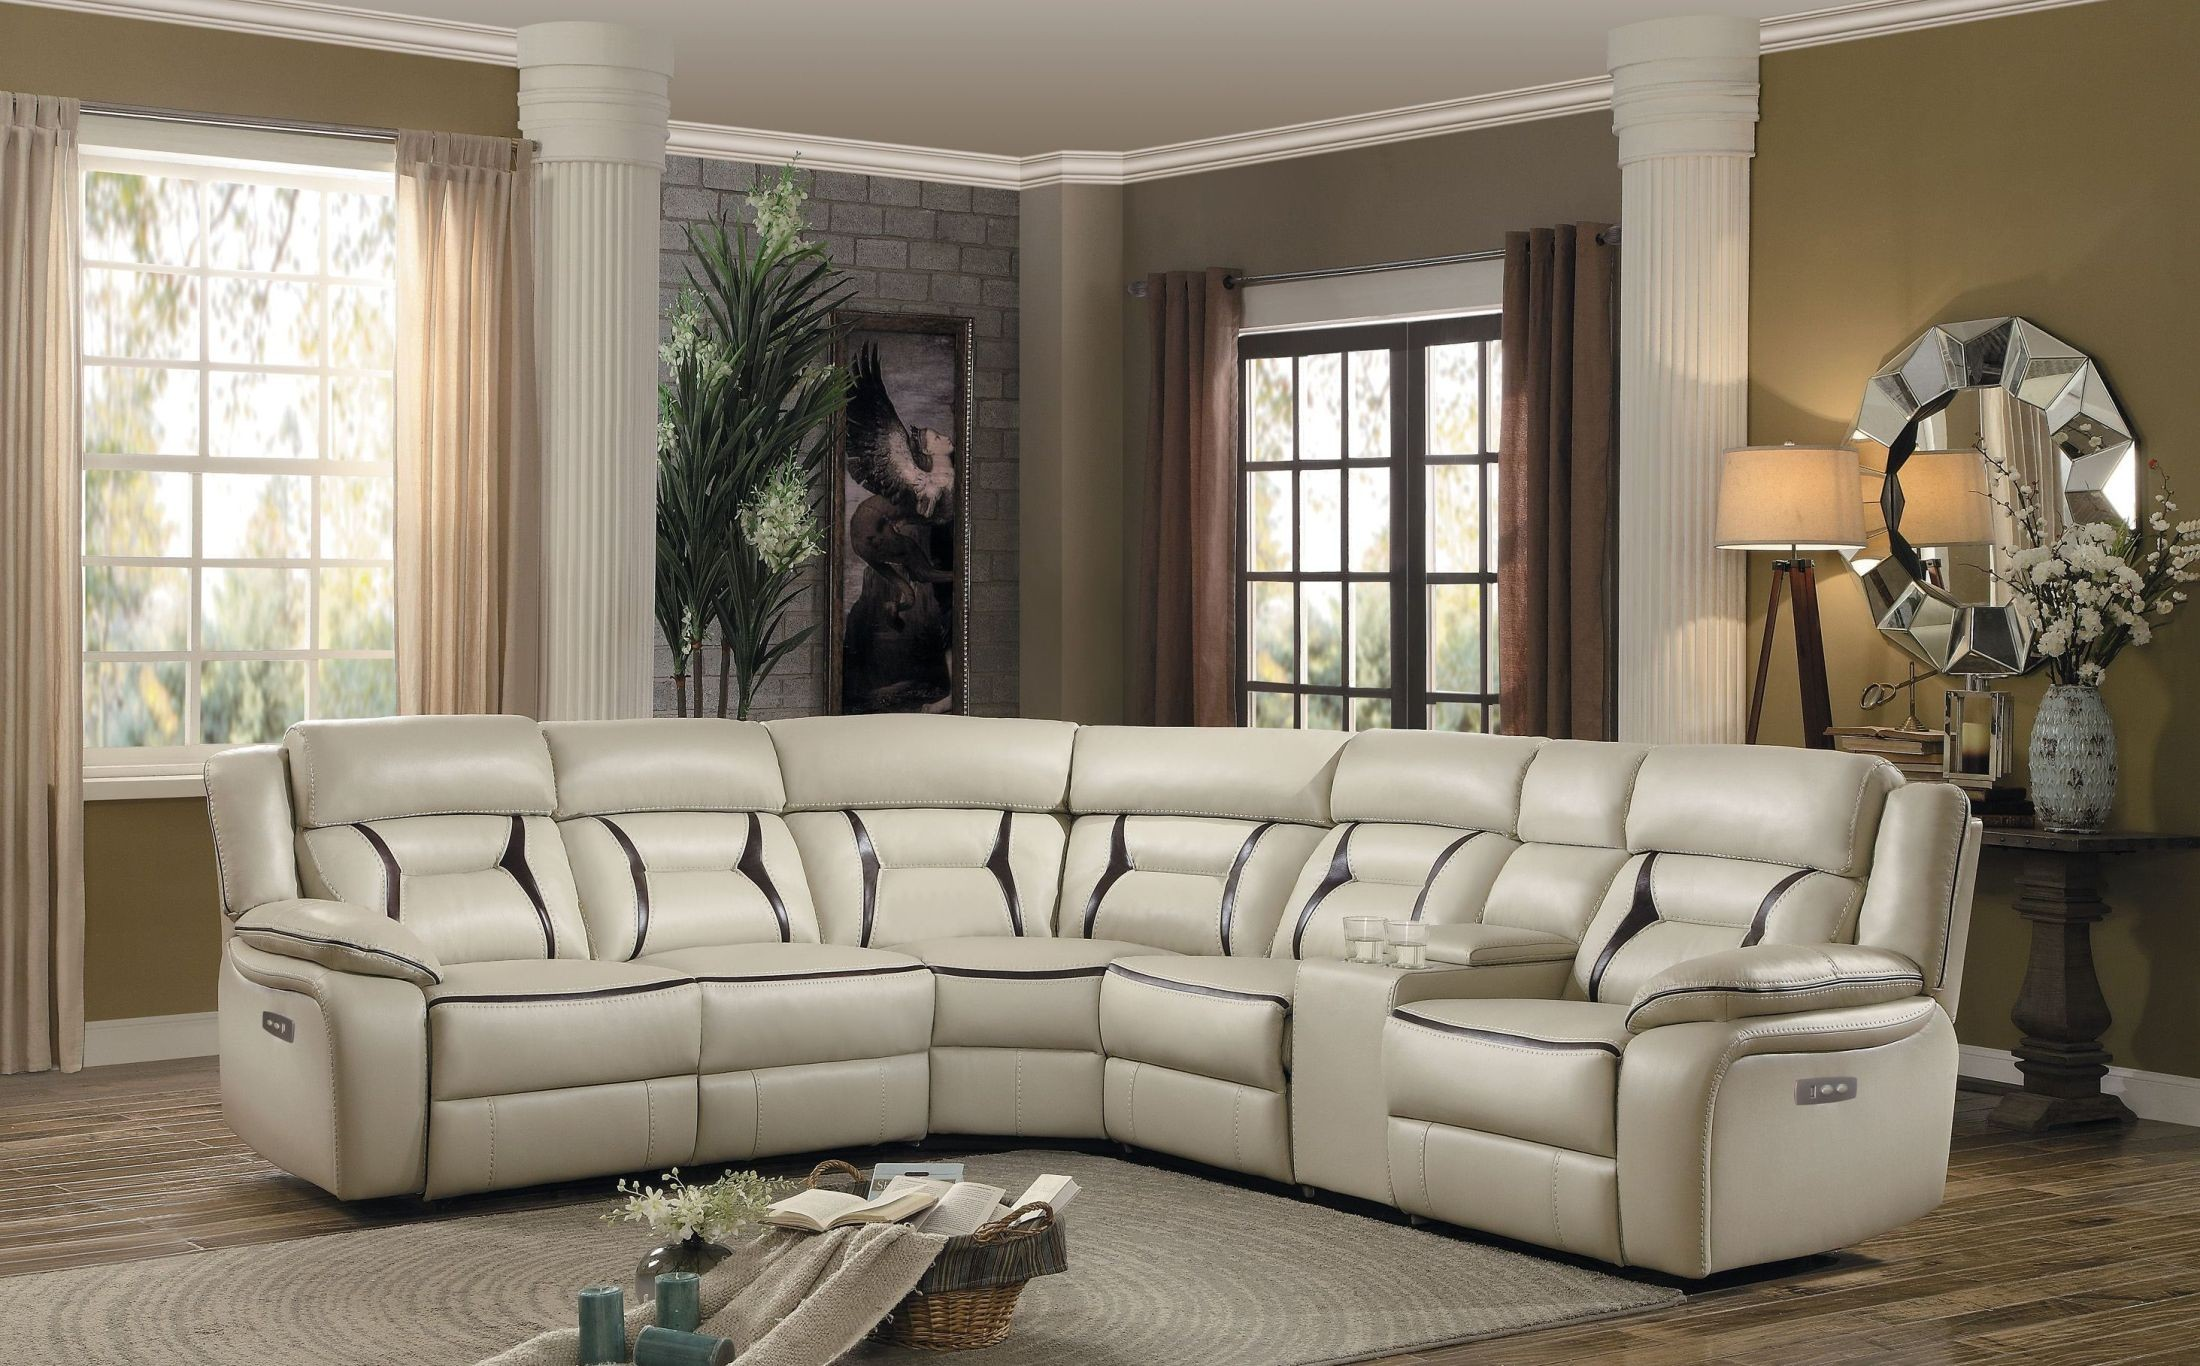 Amite Beige Power Reclining Sectional From Homelegance Coleman  # Muebles Nicasio Orono